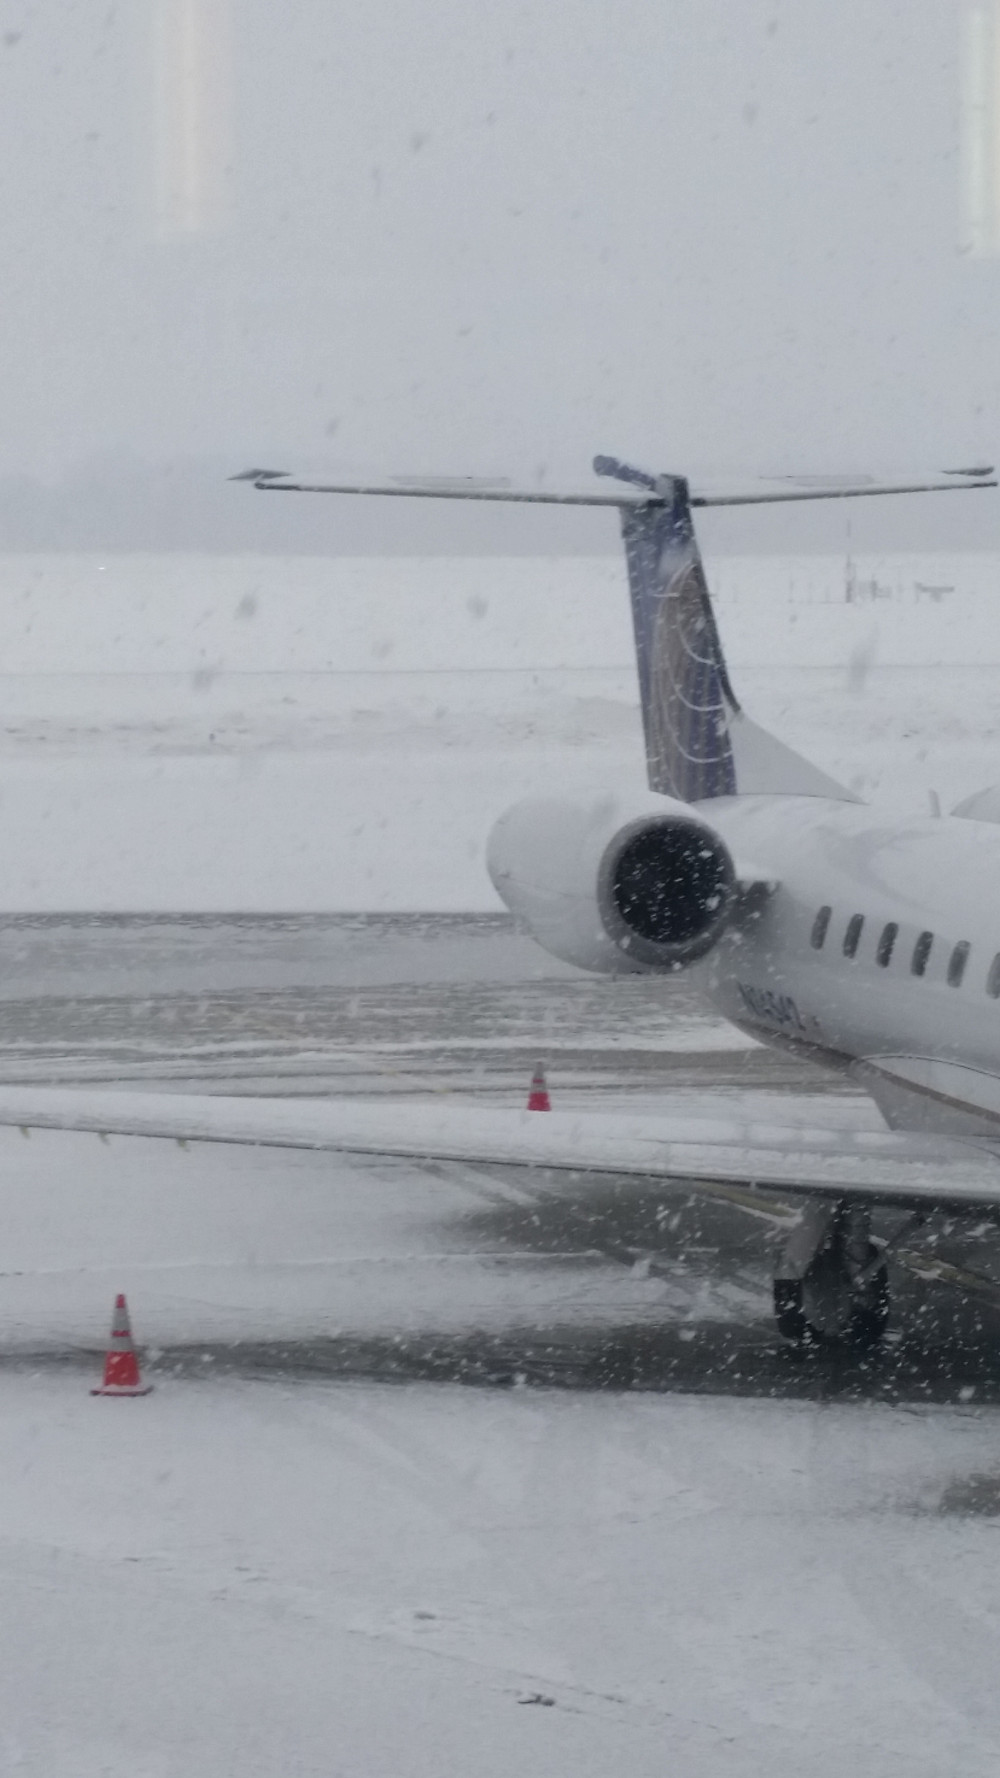 Snowy scene at the airport. Will I get out?